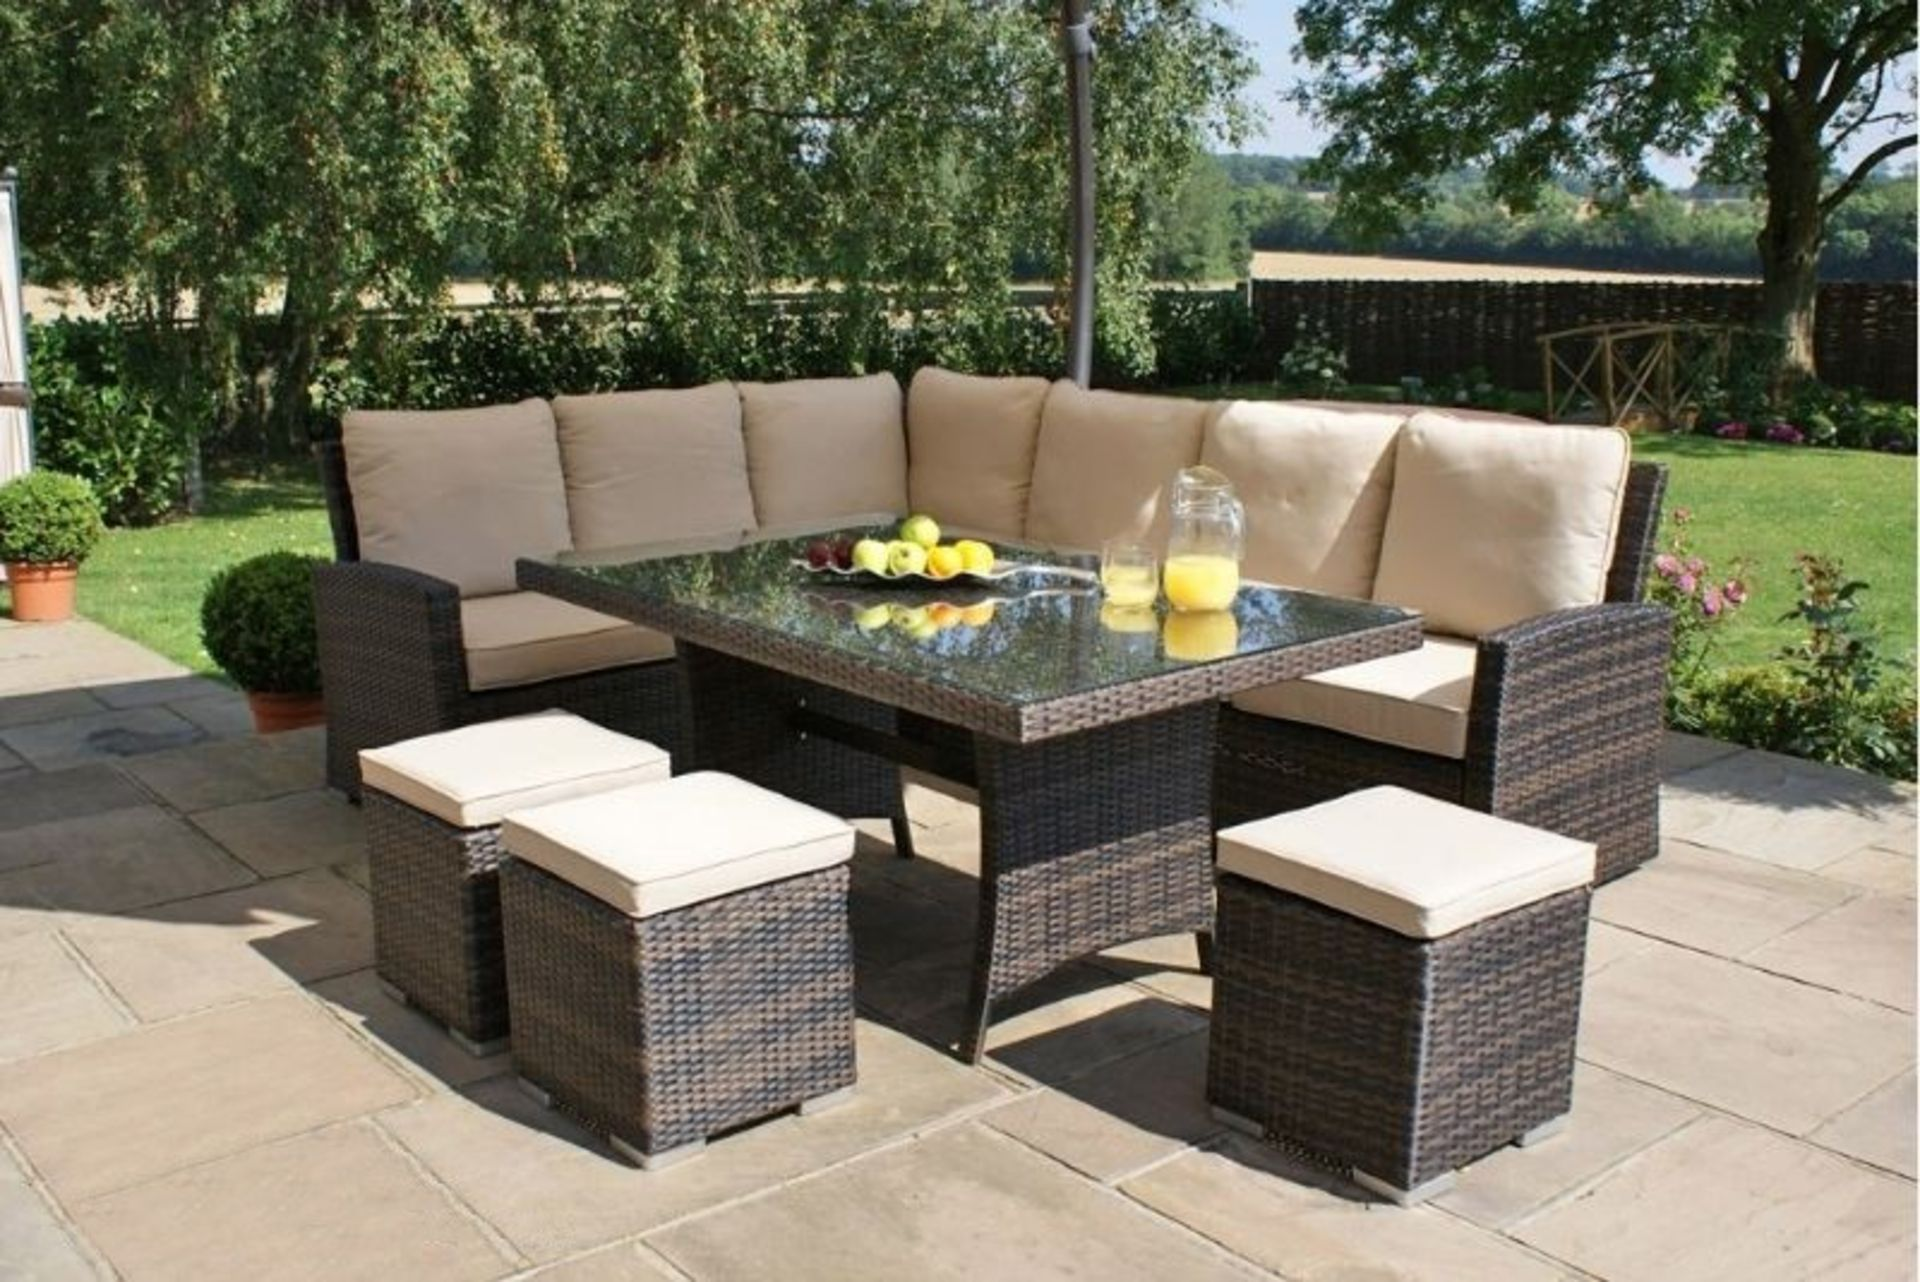 + VAT Brand New Chelsea Garden Company 8-Seater Brown Rattan Corner Dining Set With Ivory - Image 3 of 3